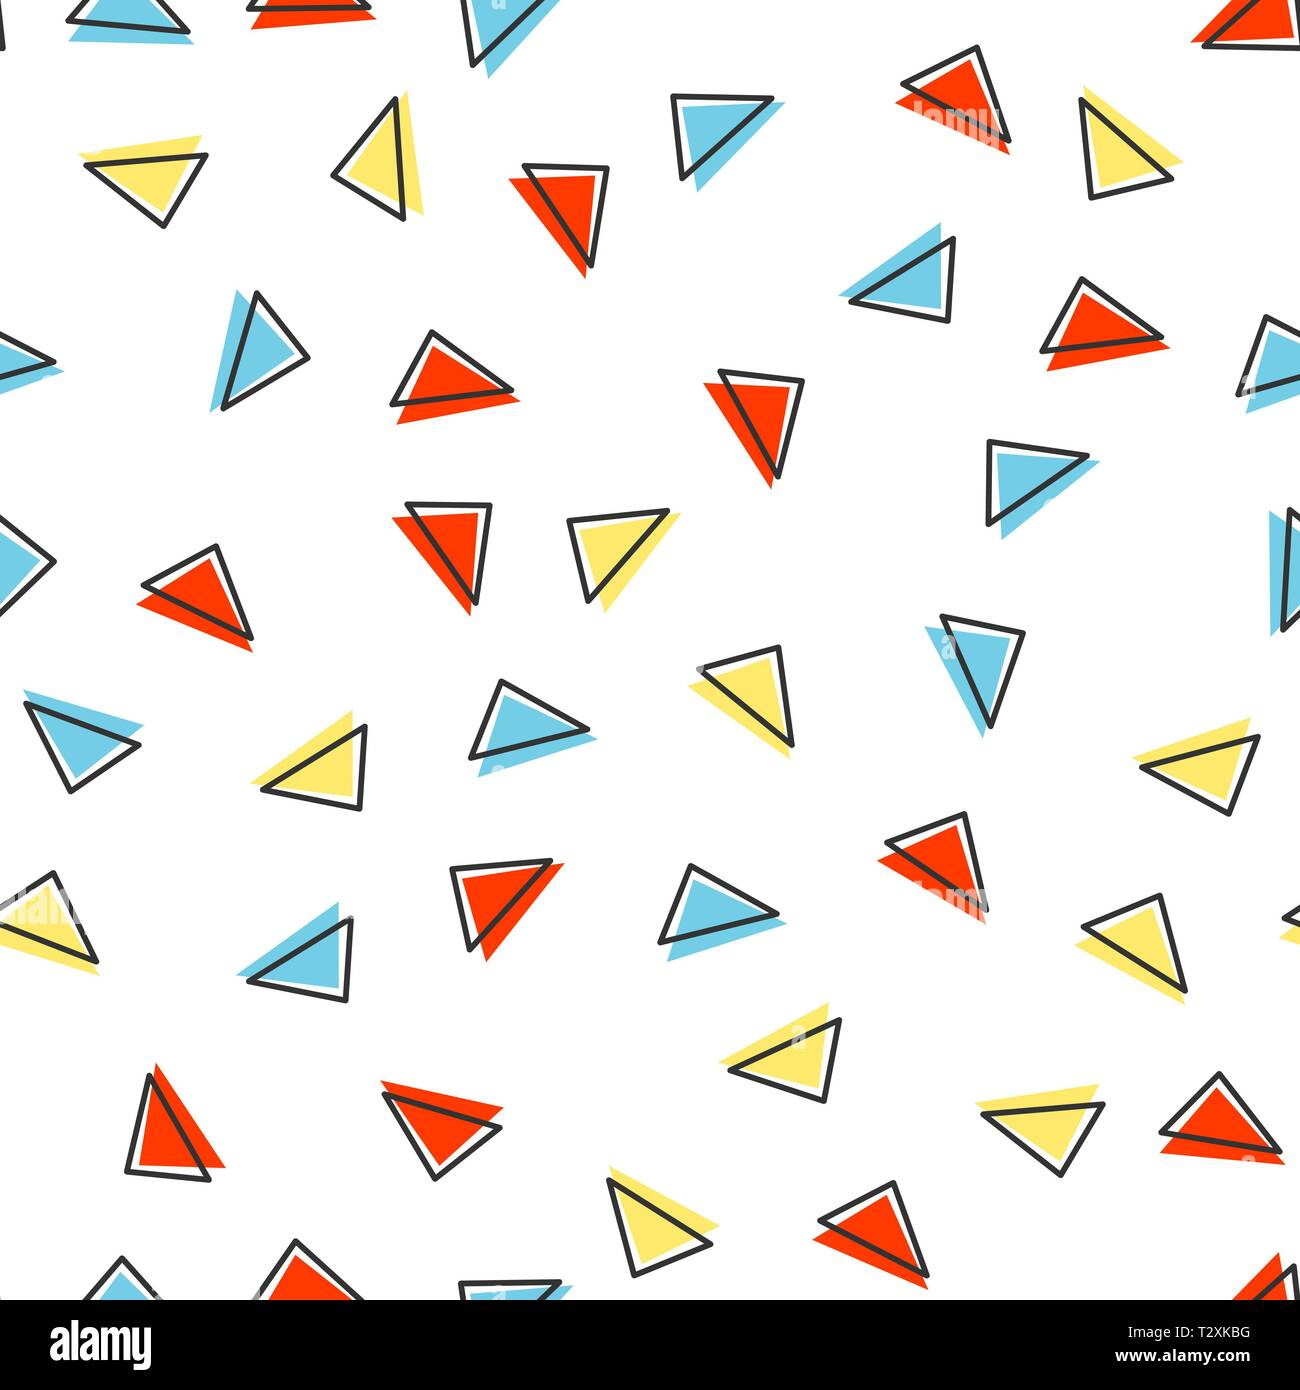 Random triangle pattern, abstract geometric background in